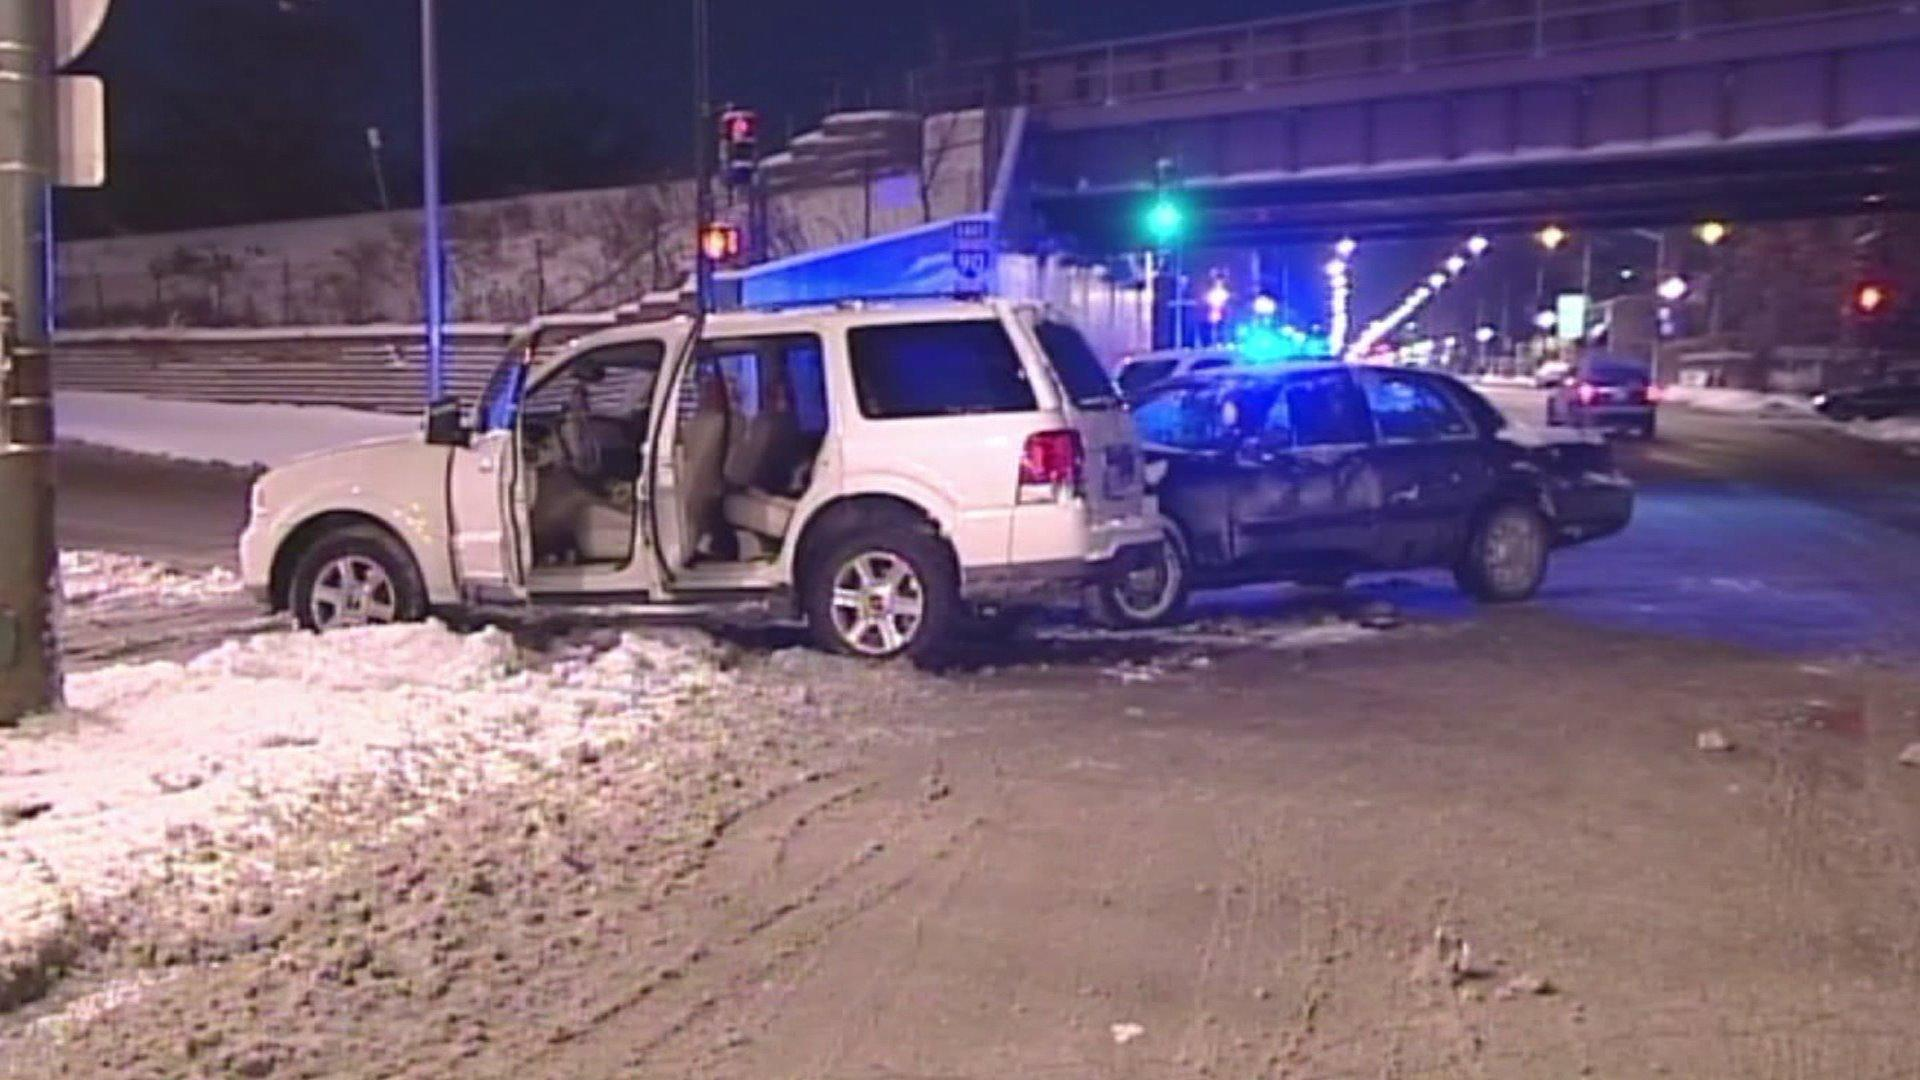 The aftermath of a collision between an unmarked police car and an SUV early this morning.